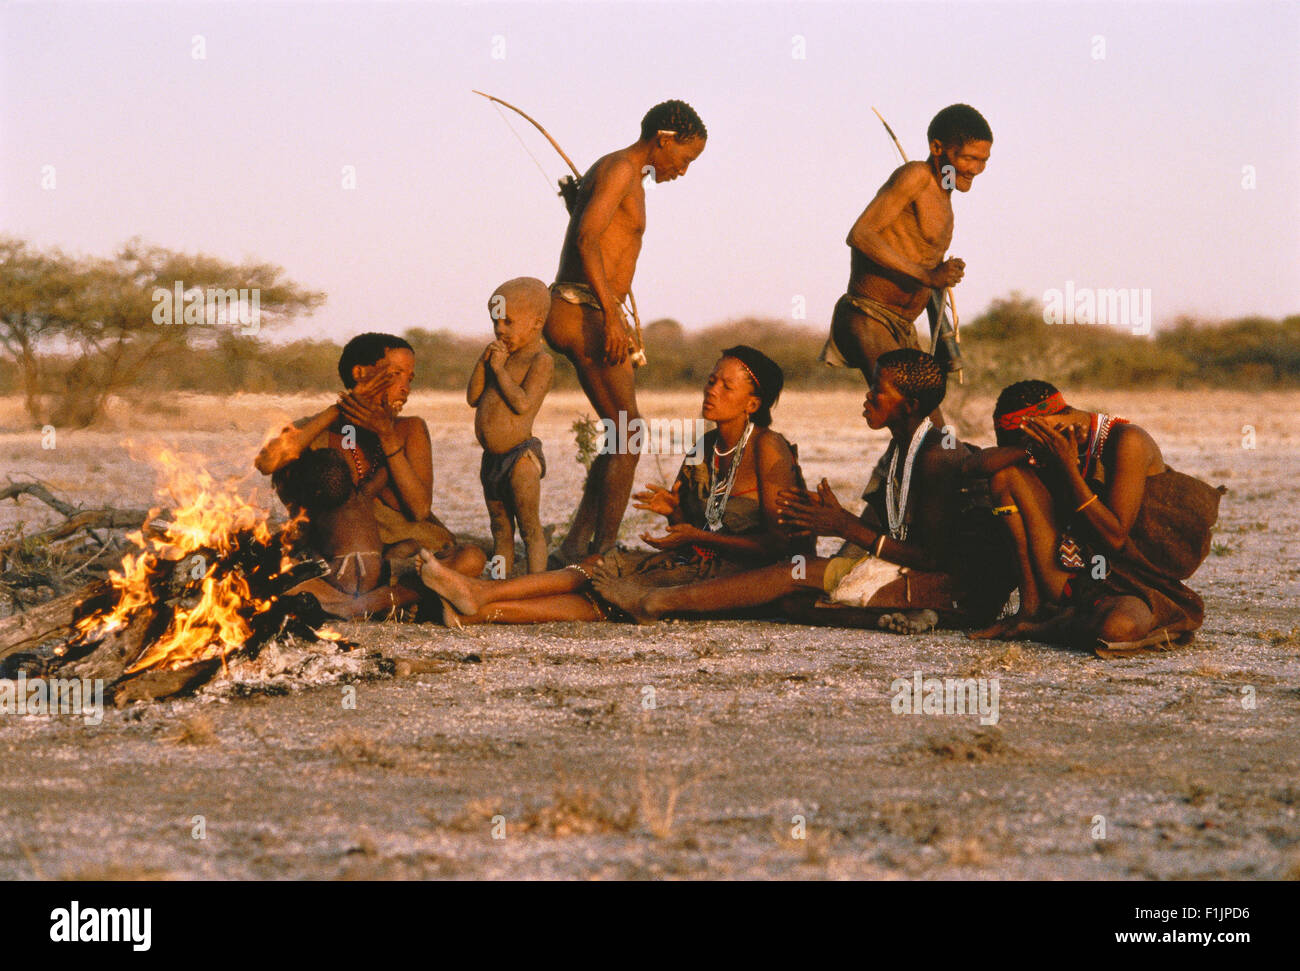 Bushmen Singing and Dancing Kalahari Desert, Botswana, Africa Stock Photo